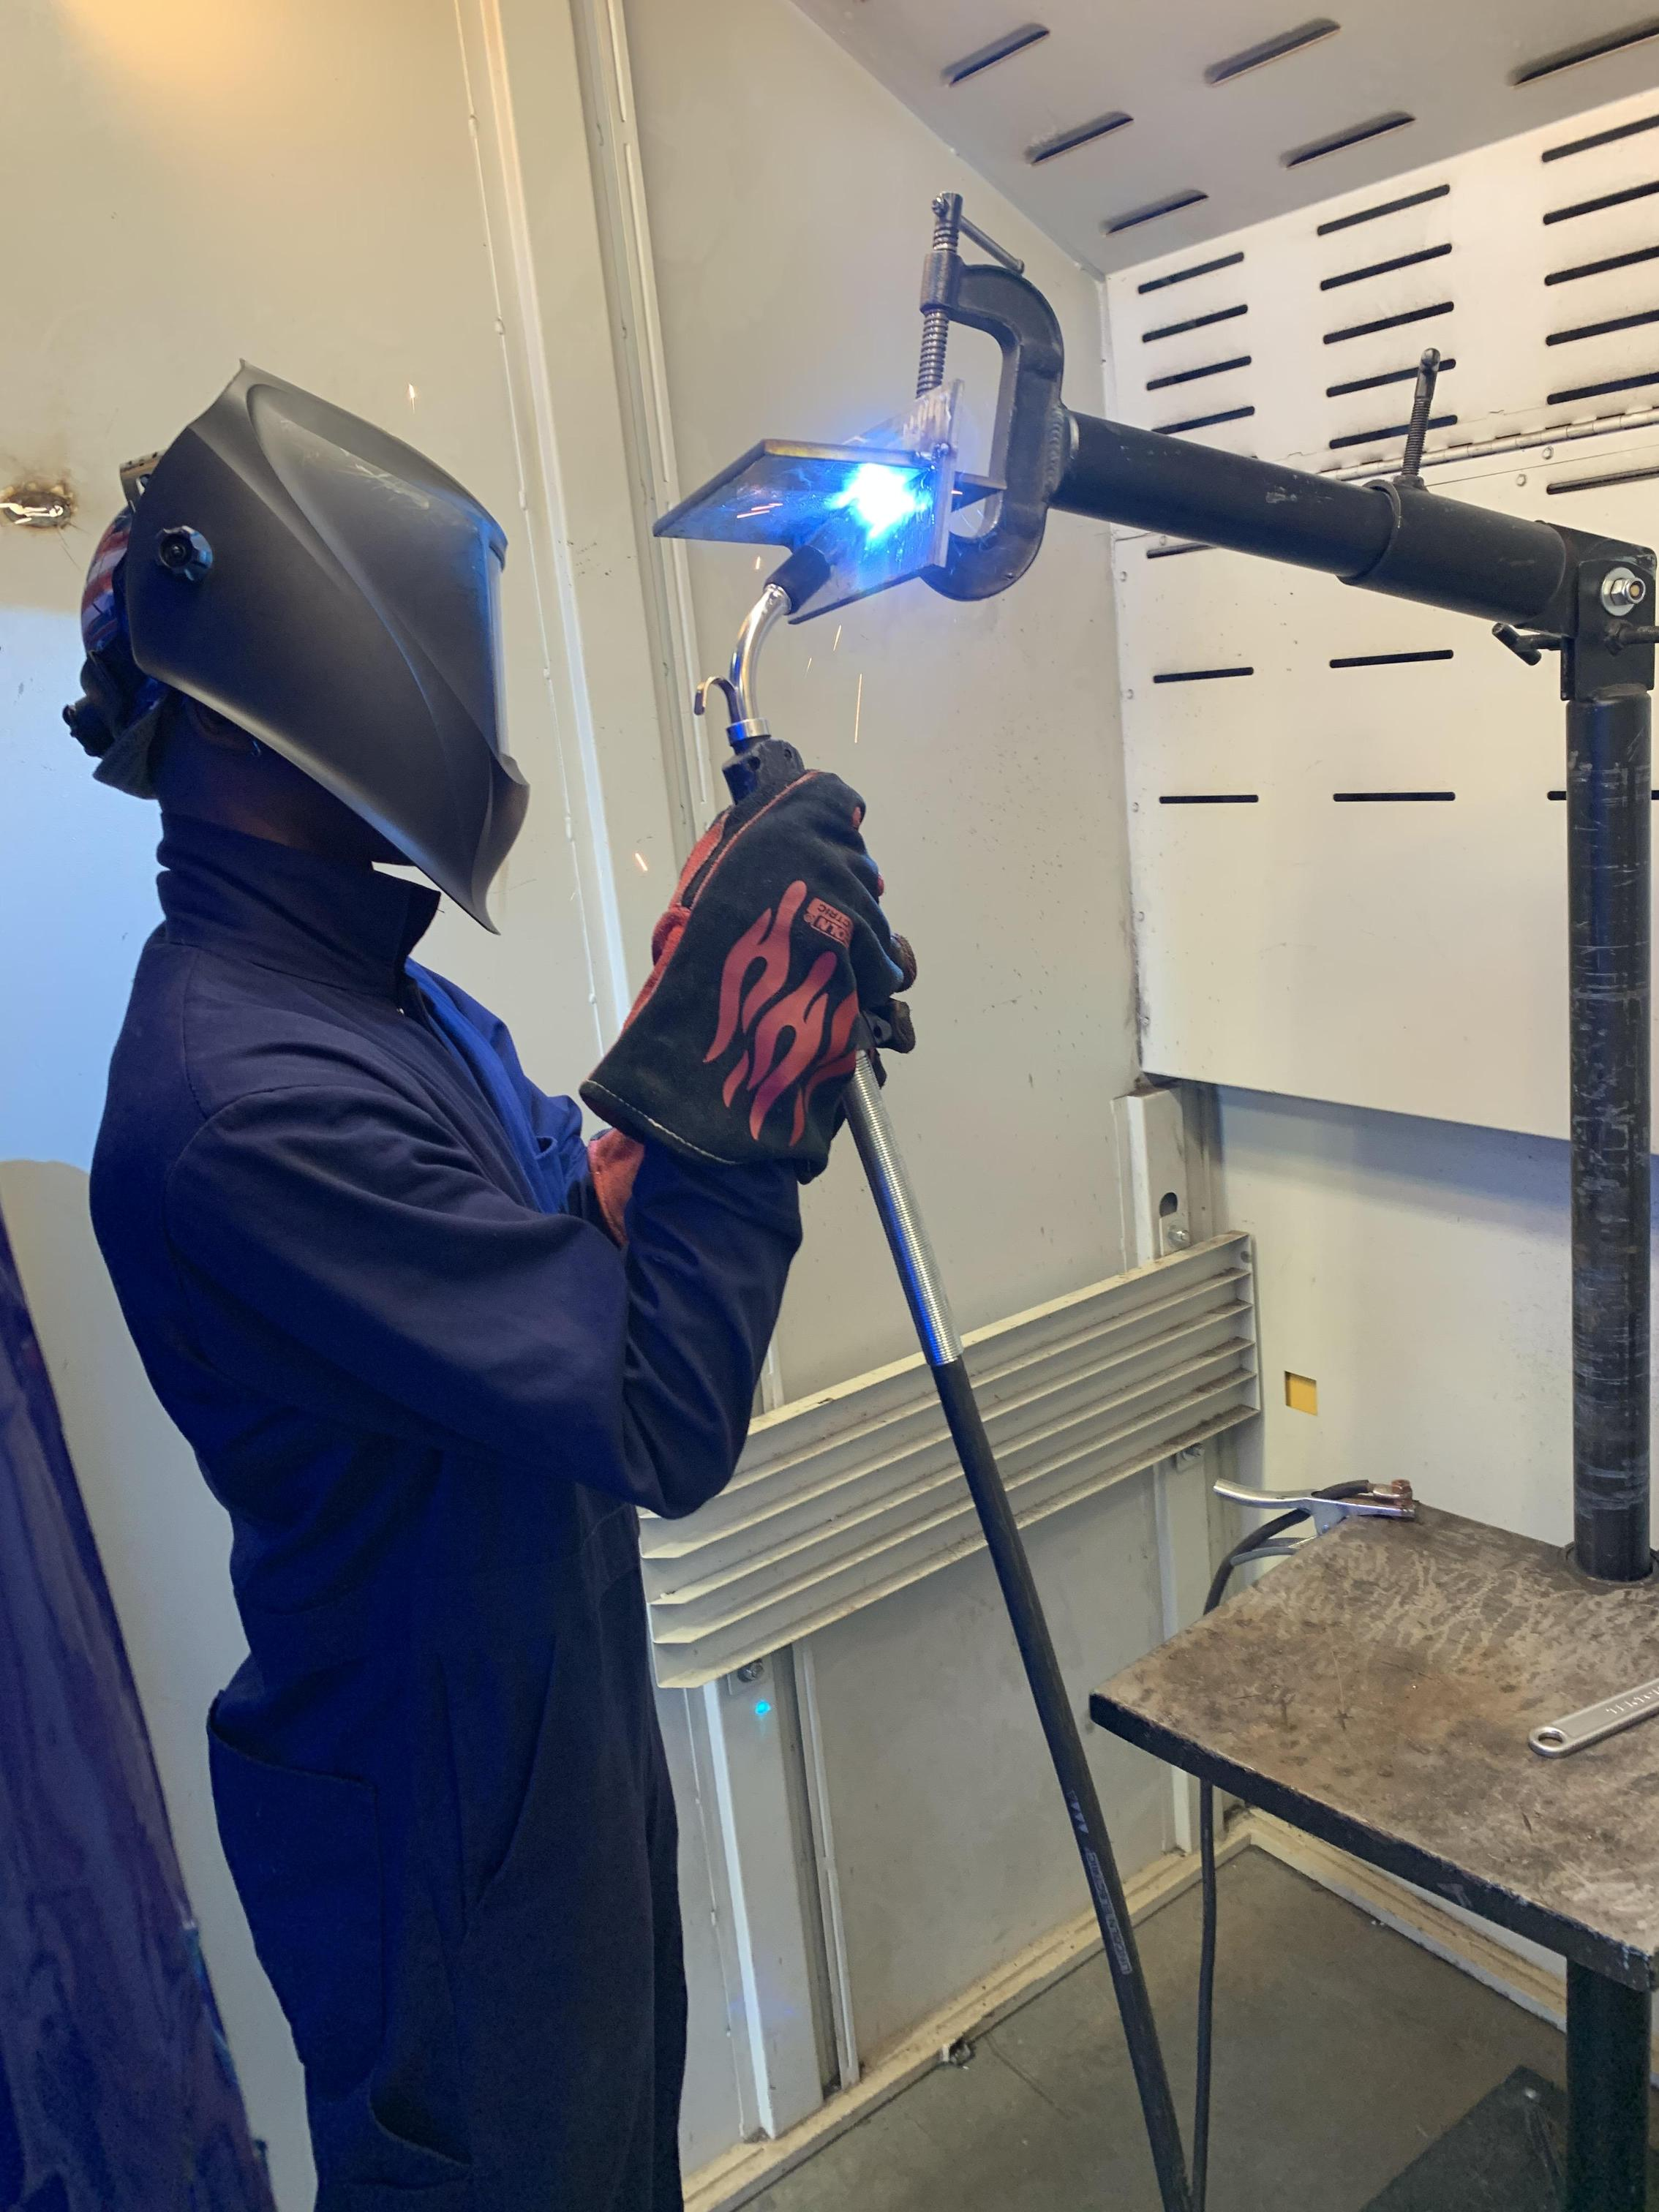 Students using the welding torch